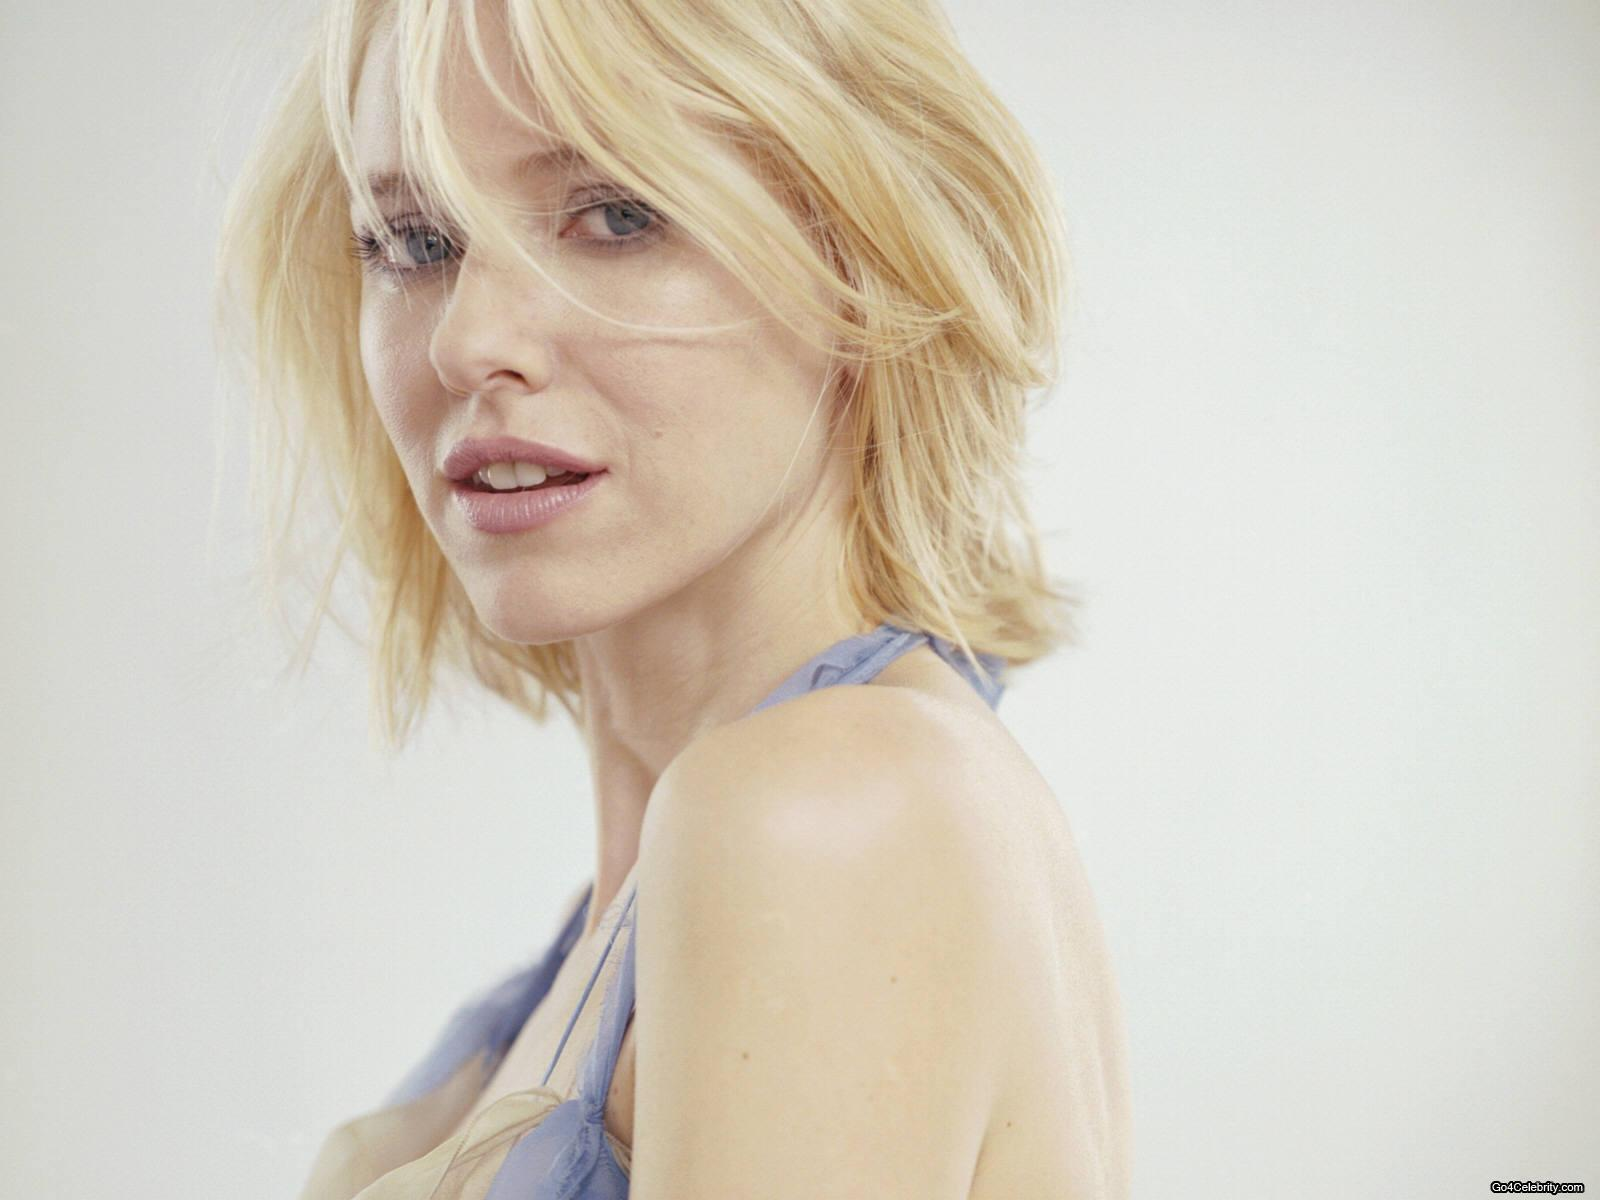 Naomi Watts Hot Wallpapers (1) | Hot Wallpaper